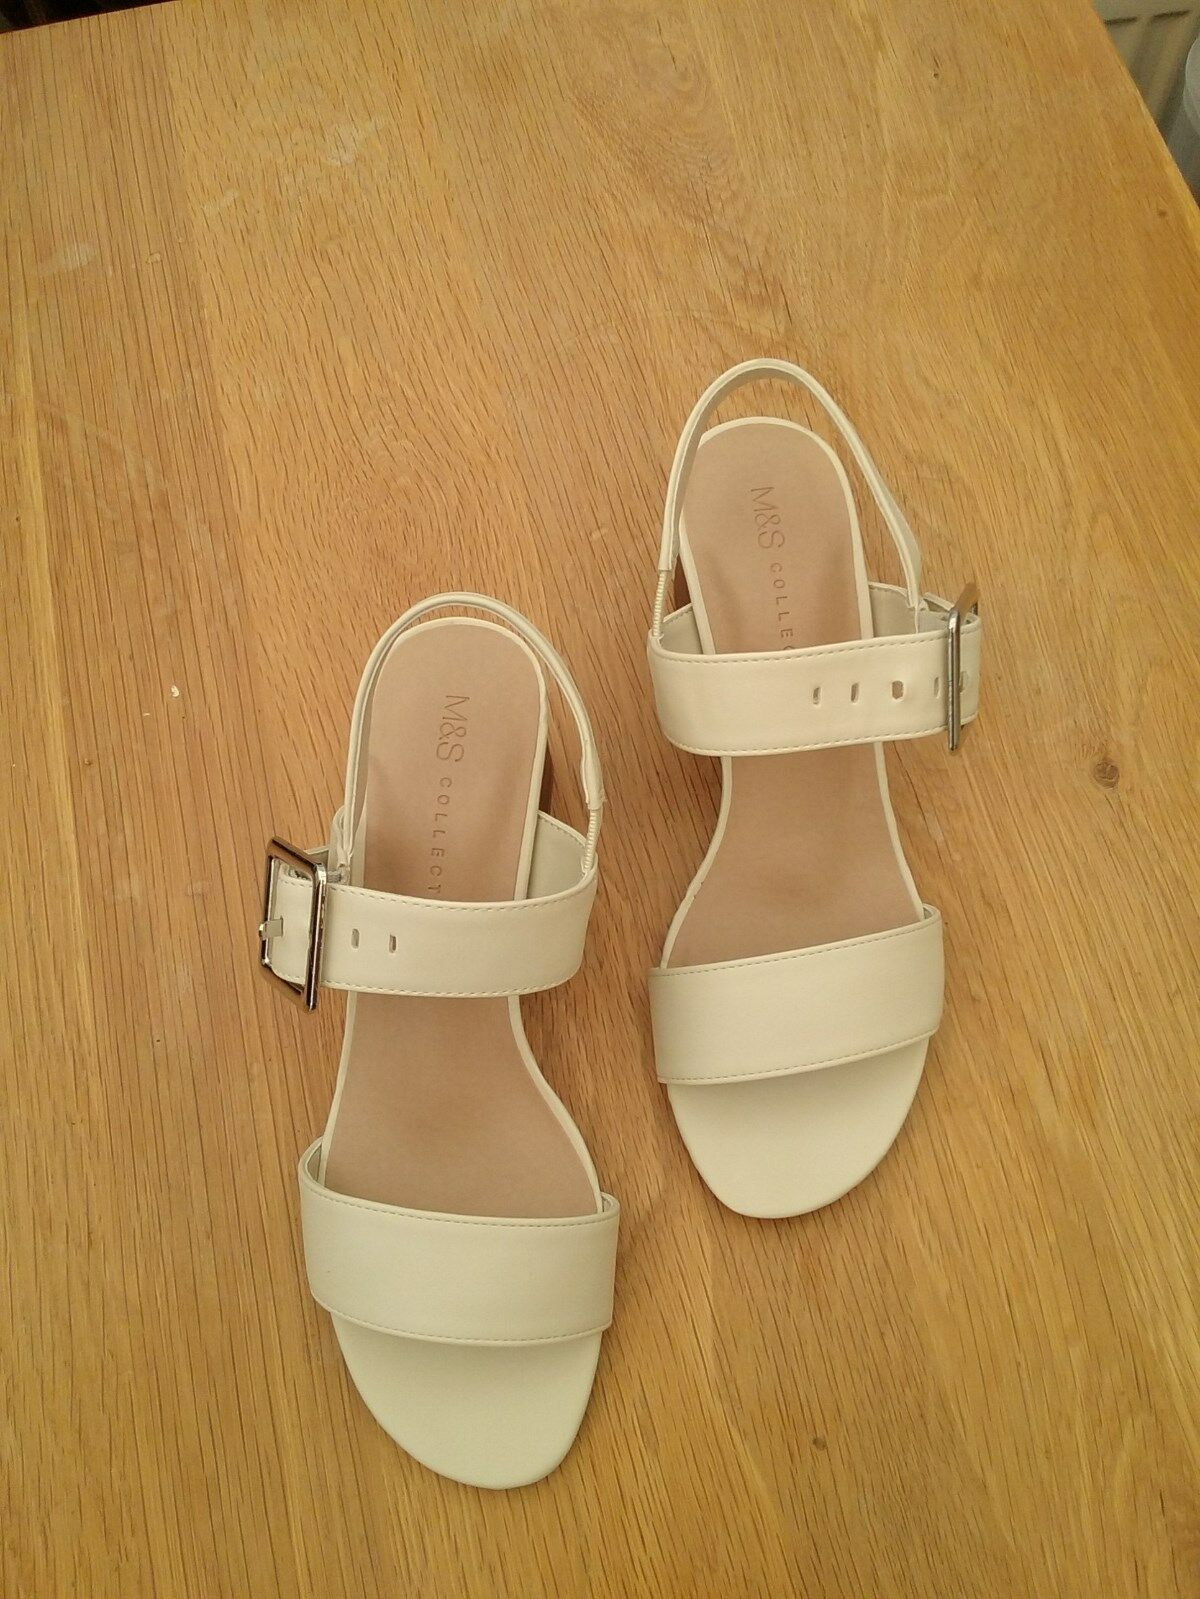 M & S Collection Ankle Womens Ivory/Cream Block Heel Ankle Collection Strap Sandals size 3 New dd8955